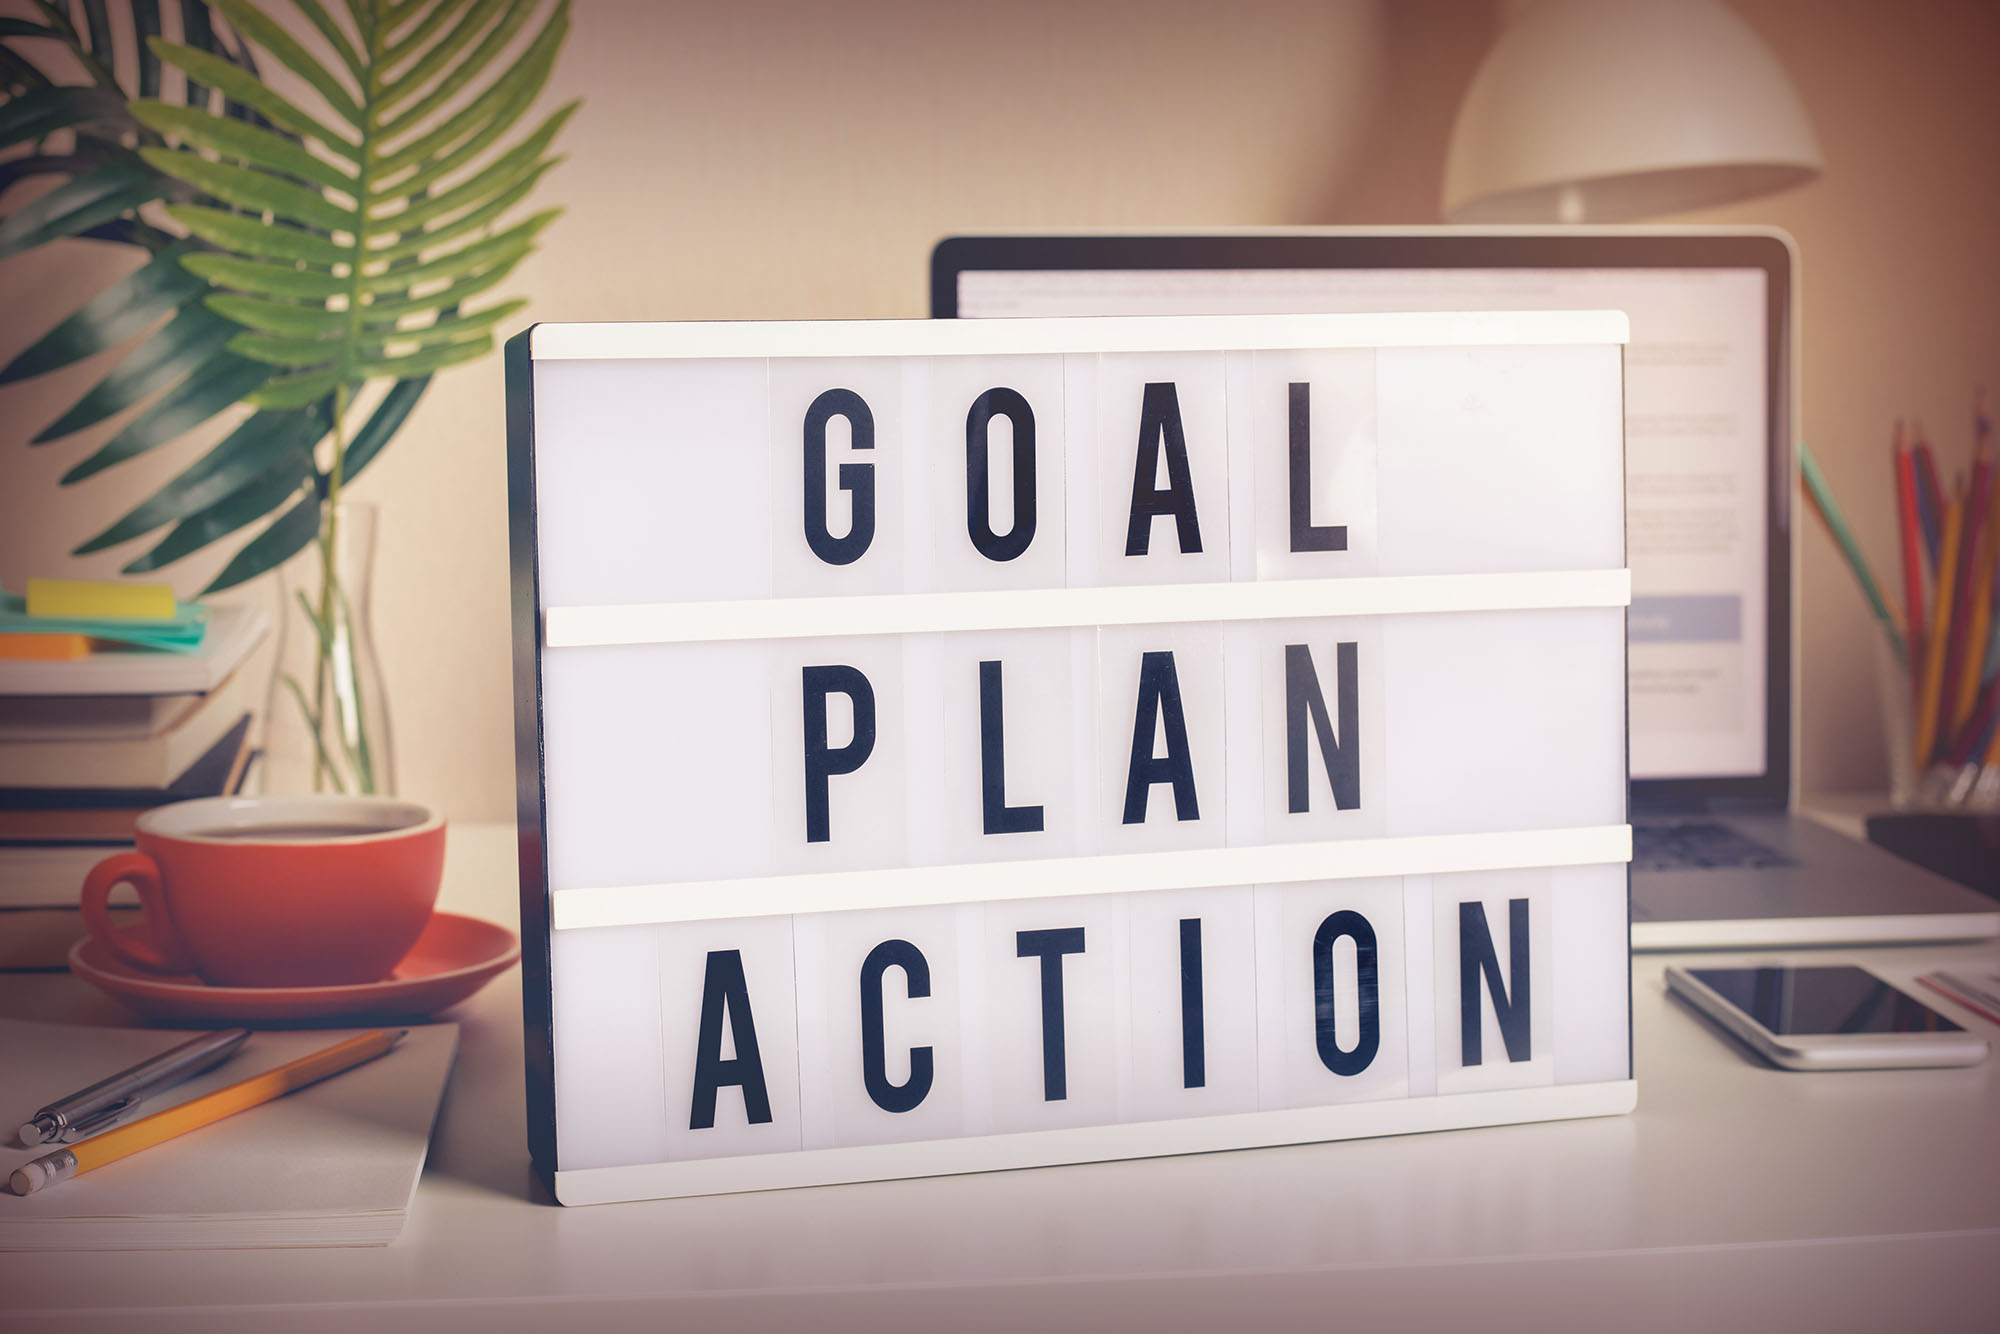 Premier Medical Group - New Years Resolutions - Goal. Plan. Action